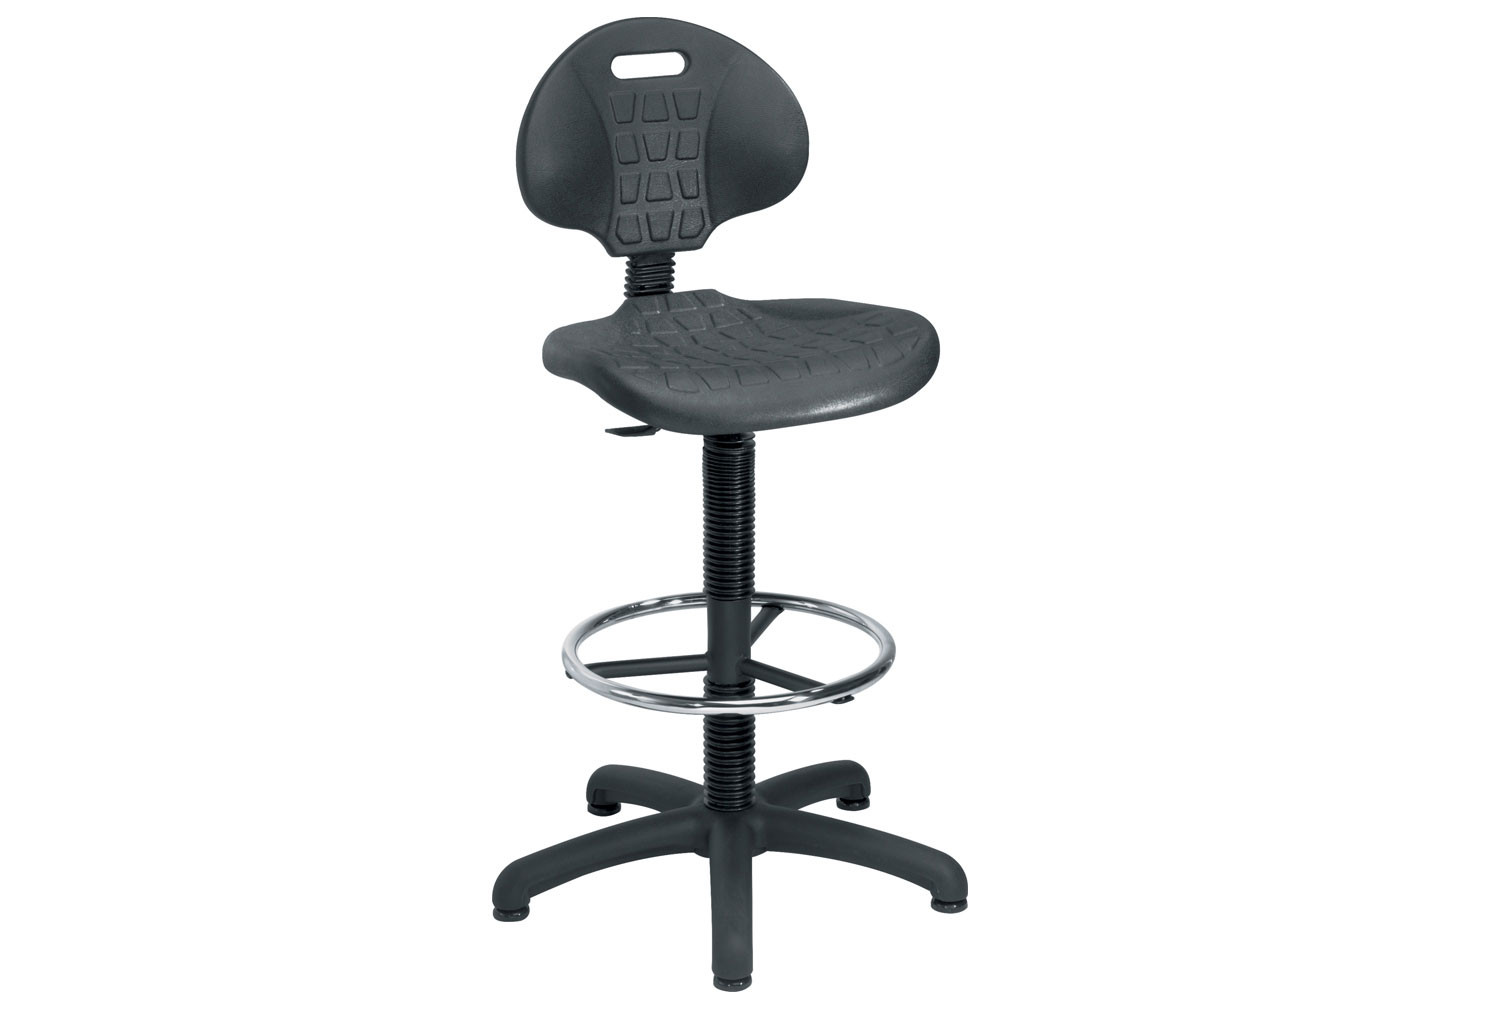 Next-Day Echo Industrial Draughtsman Chair